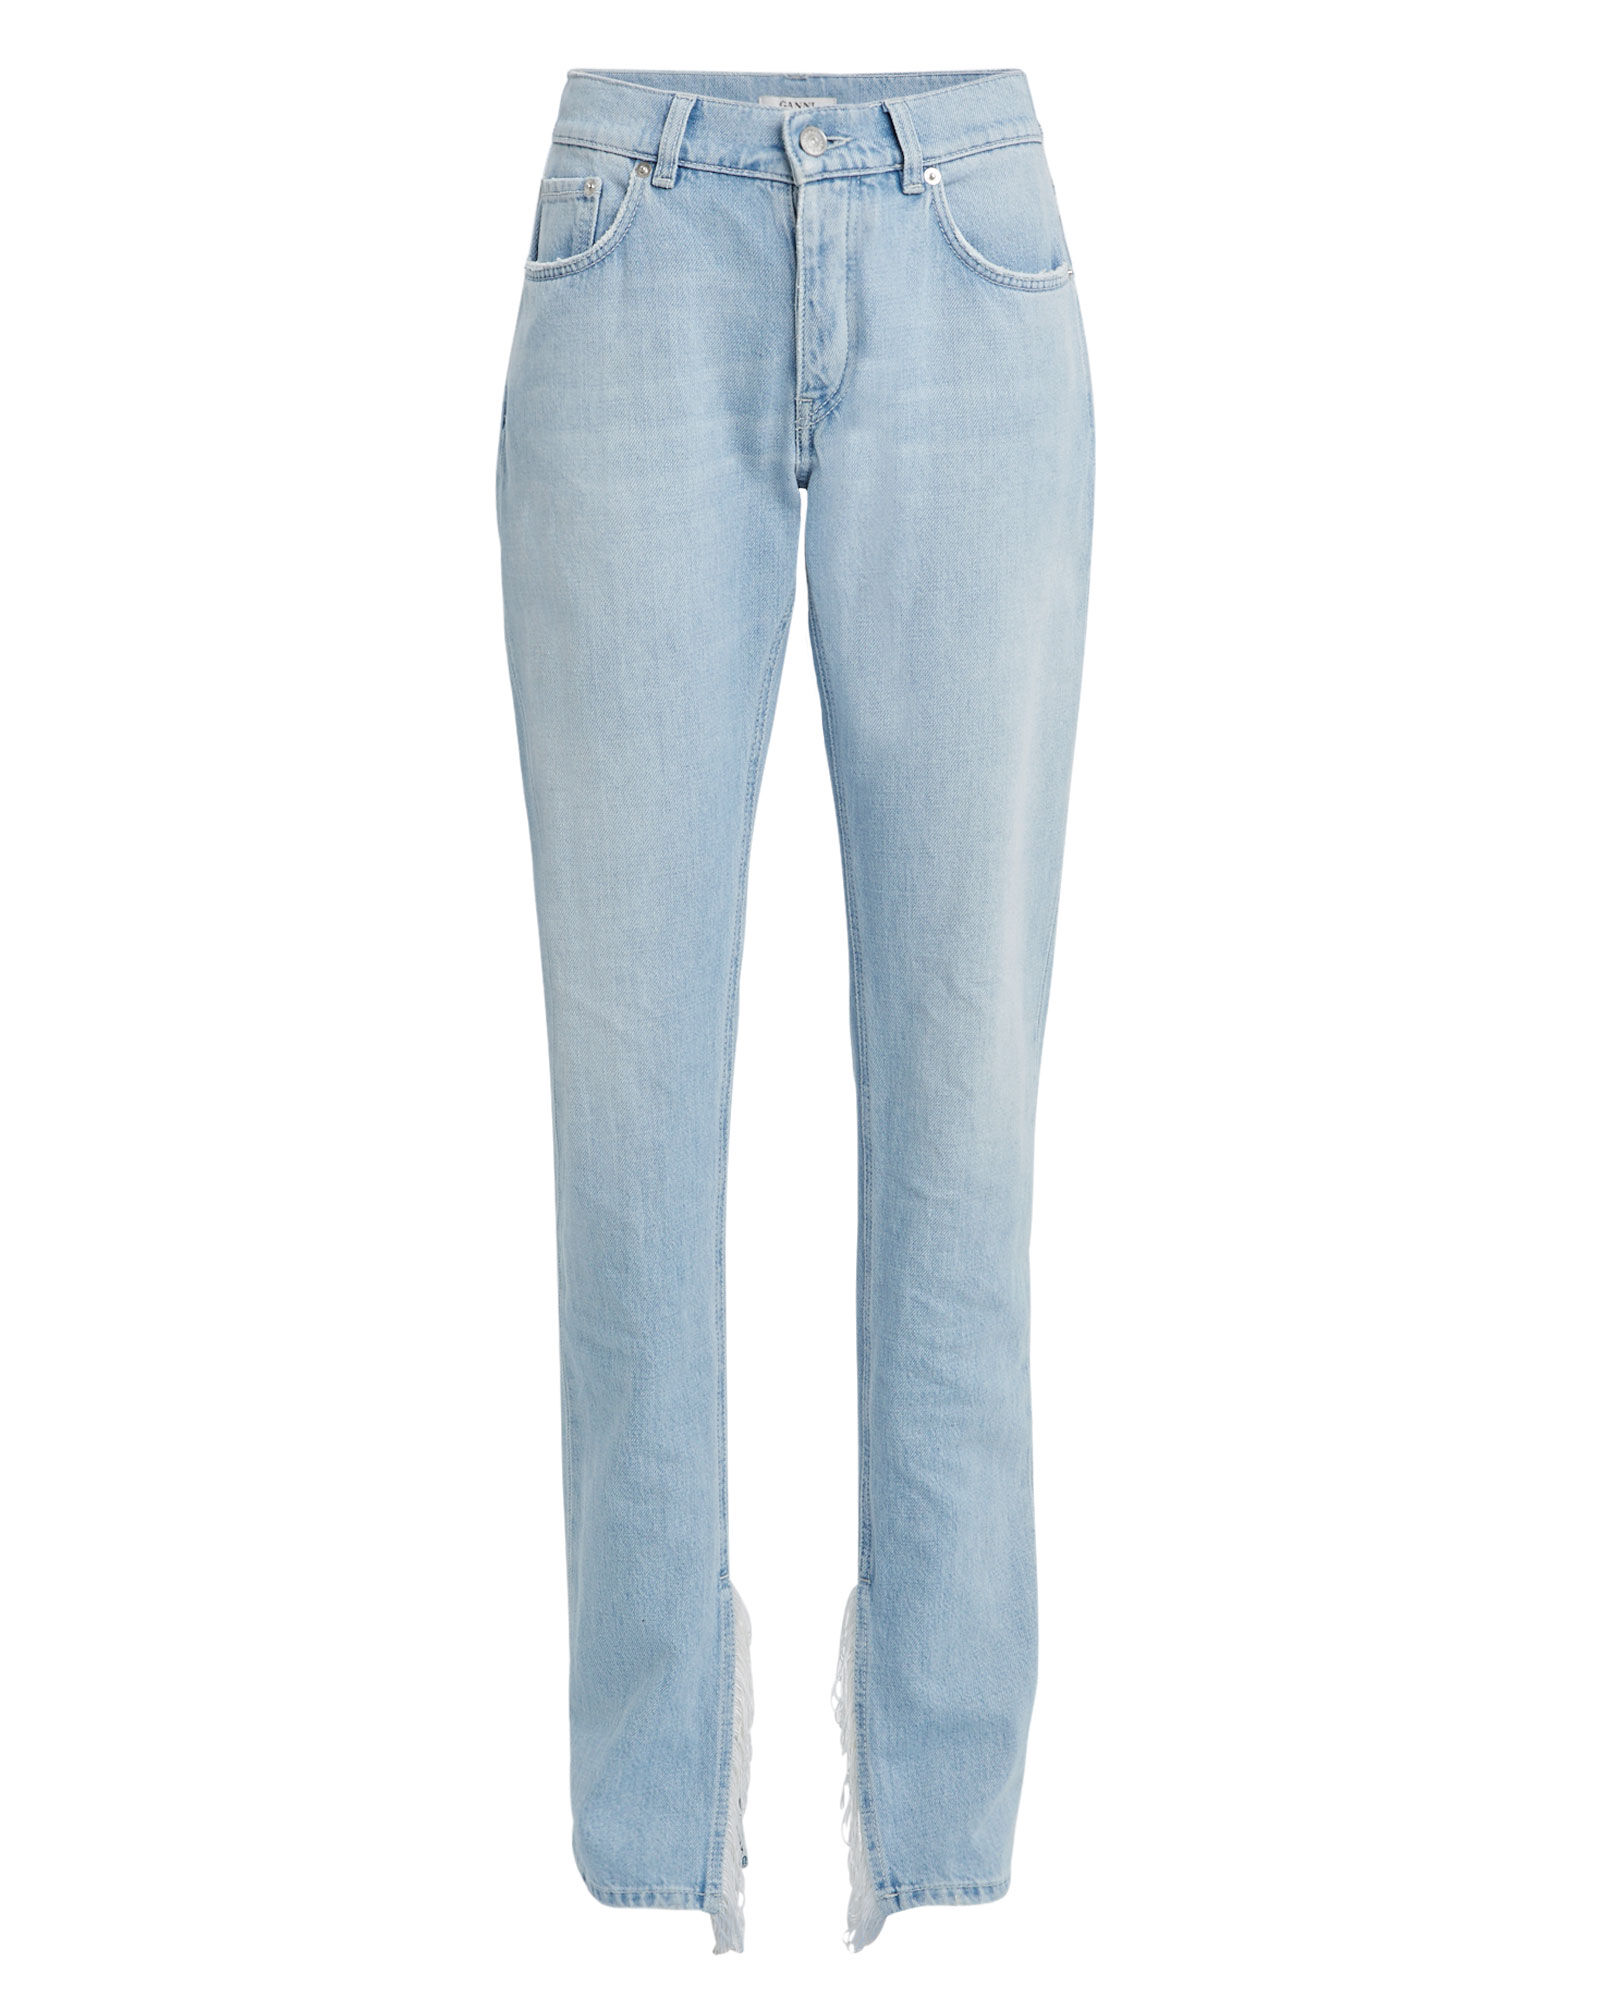 Fringe Straight Leg Jeans, DENIM-LT, hi-res